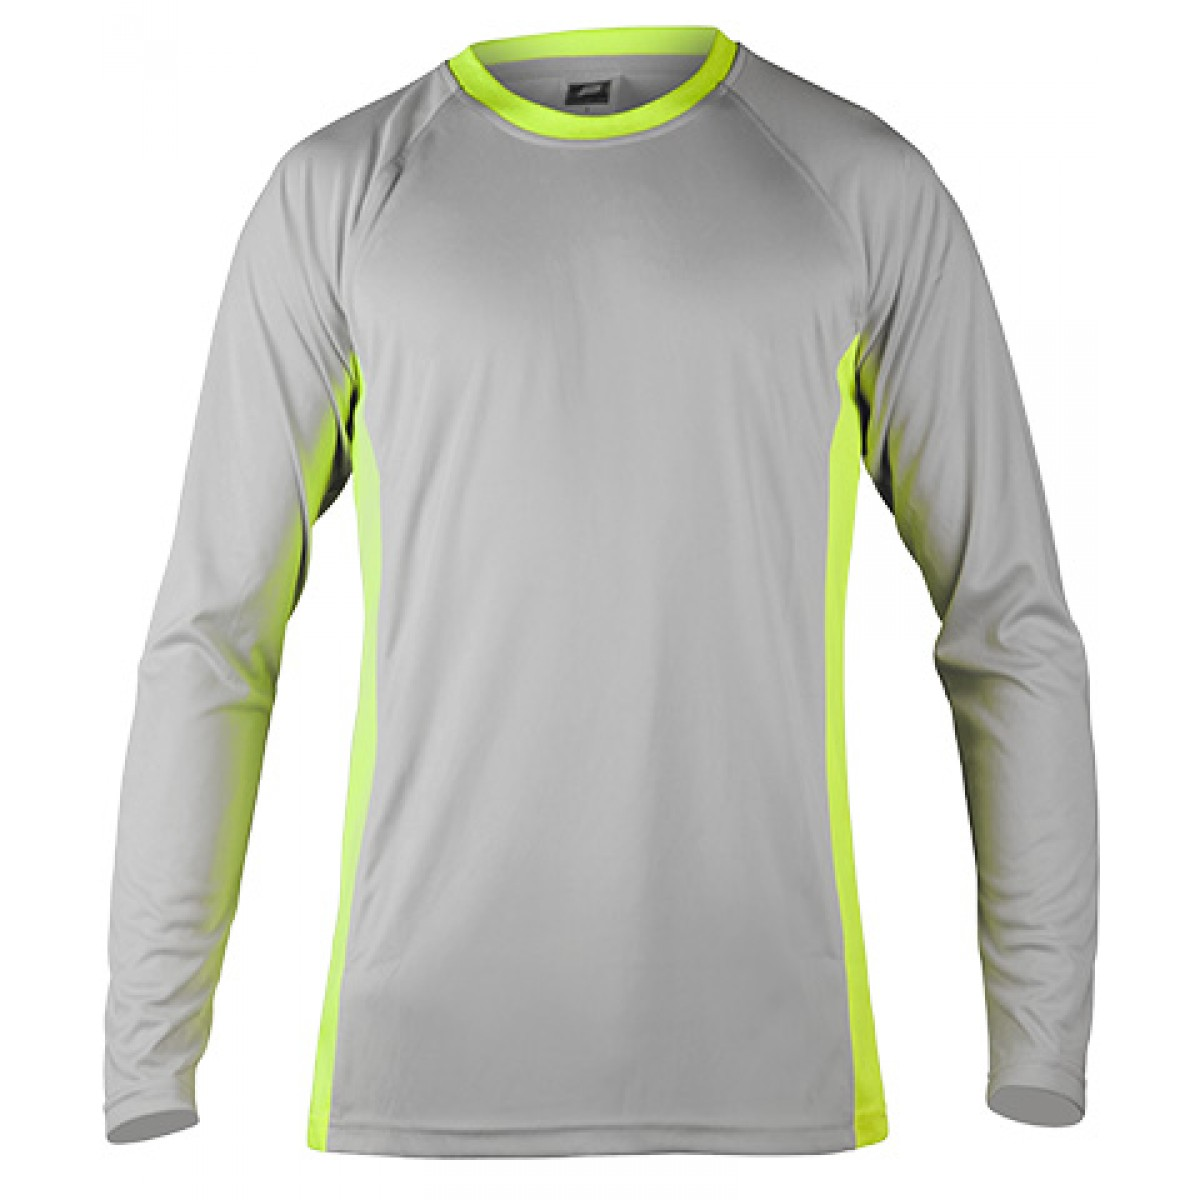 Long Sleeves Performance With Side Insert